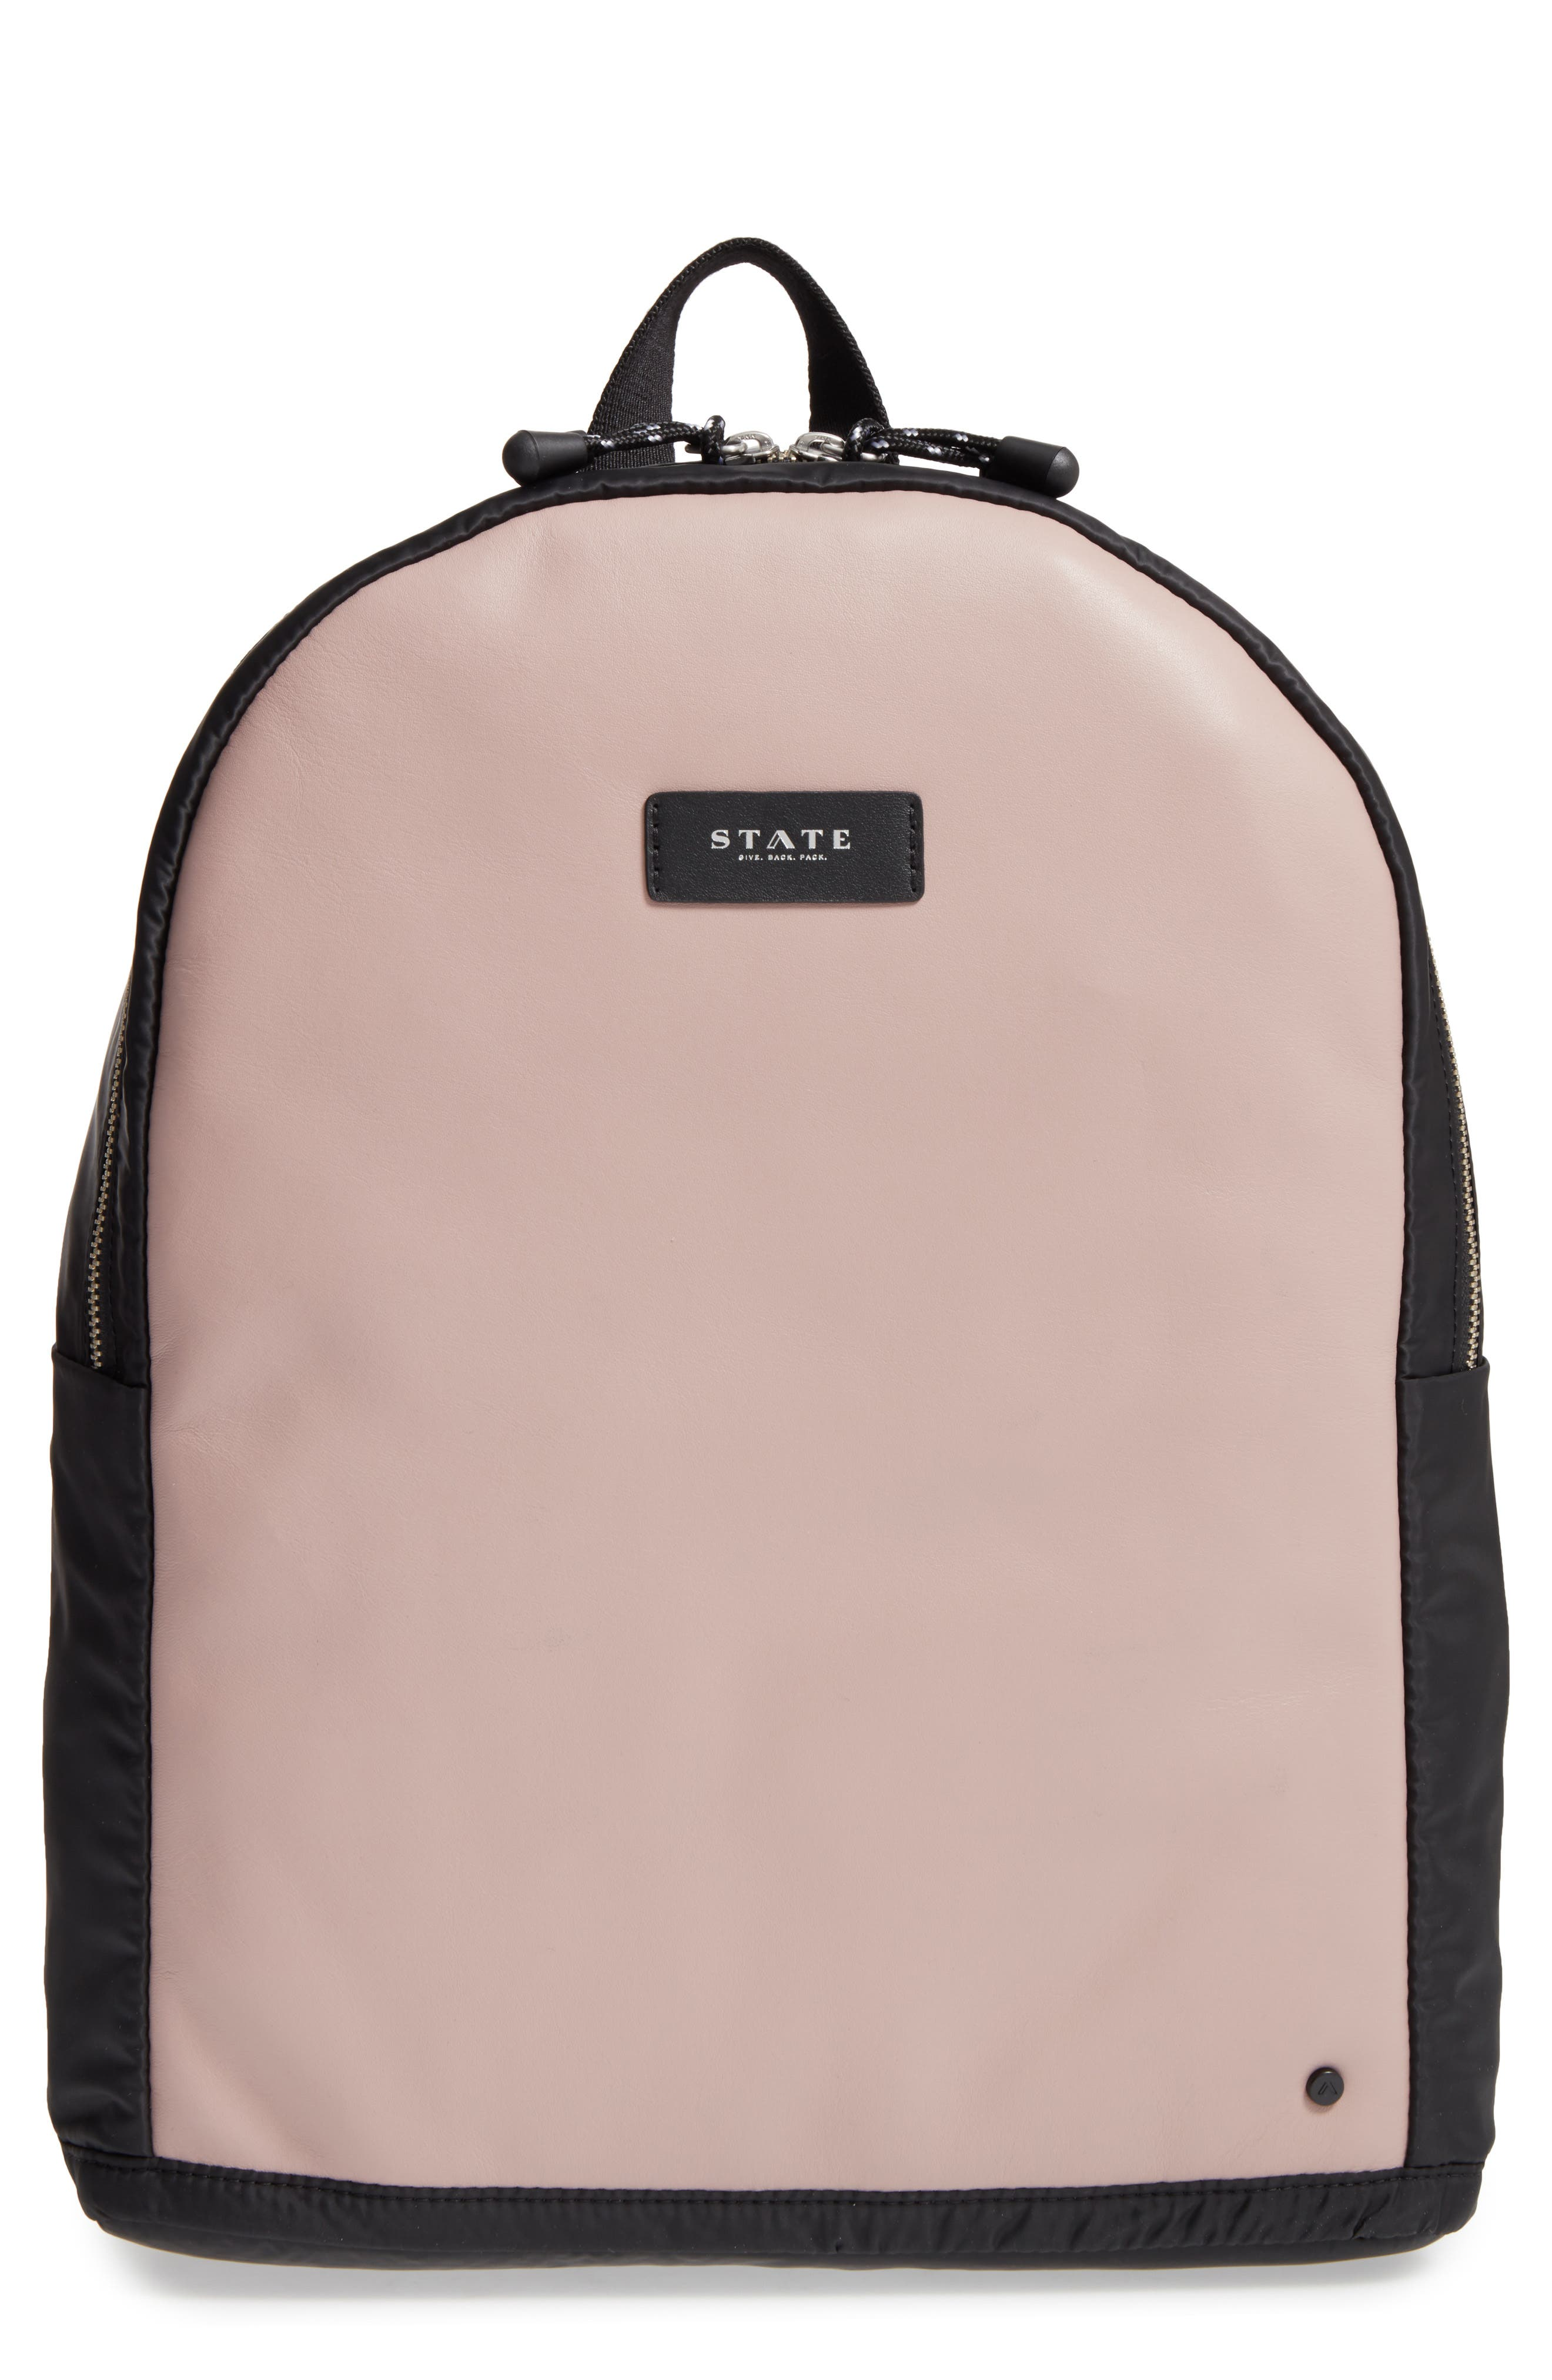 STATE BAGS,                             Cass Backpack,                             Main thumbnail 1, color,                             650